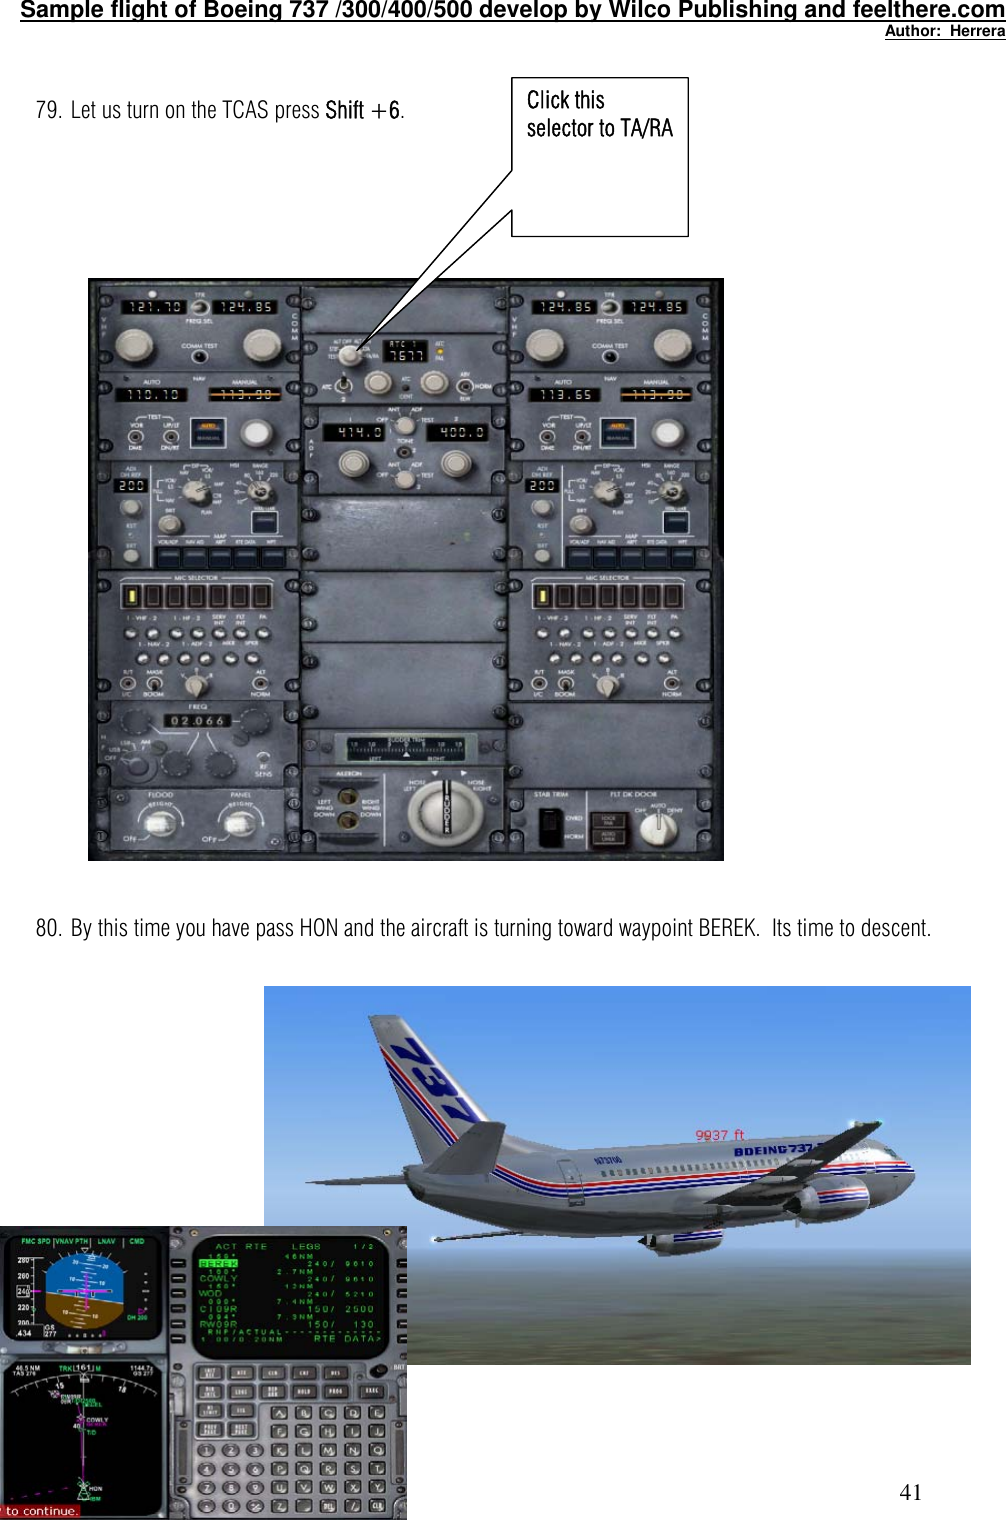 Tutorial Flight FOR WILCO FEEL THERE BOEING 737 Sample 737PIC